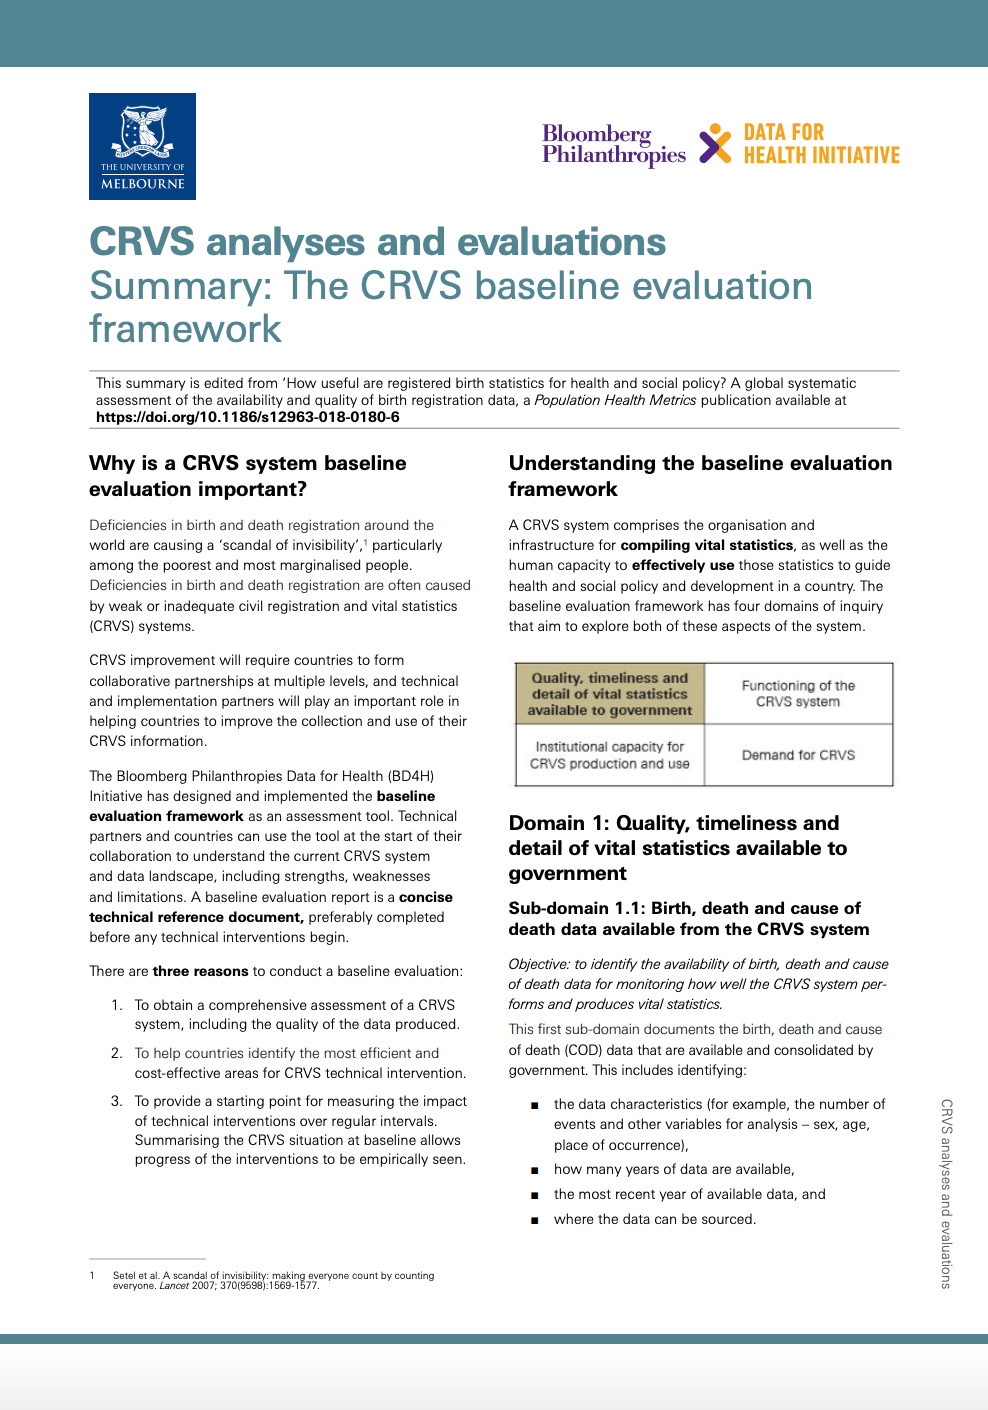 Summary: The CRVS baseline evaluation